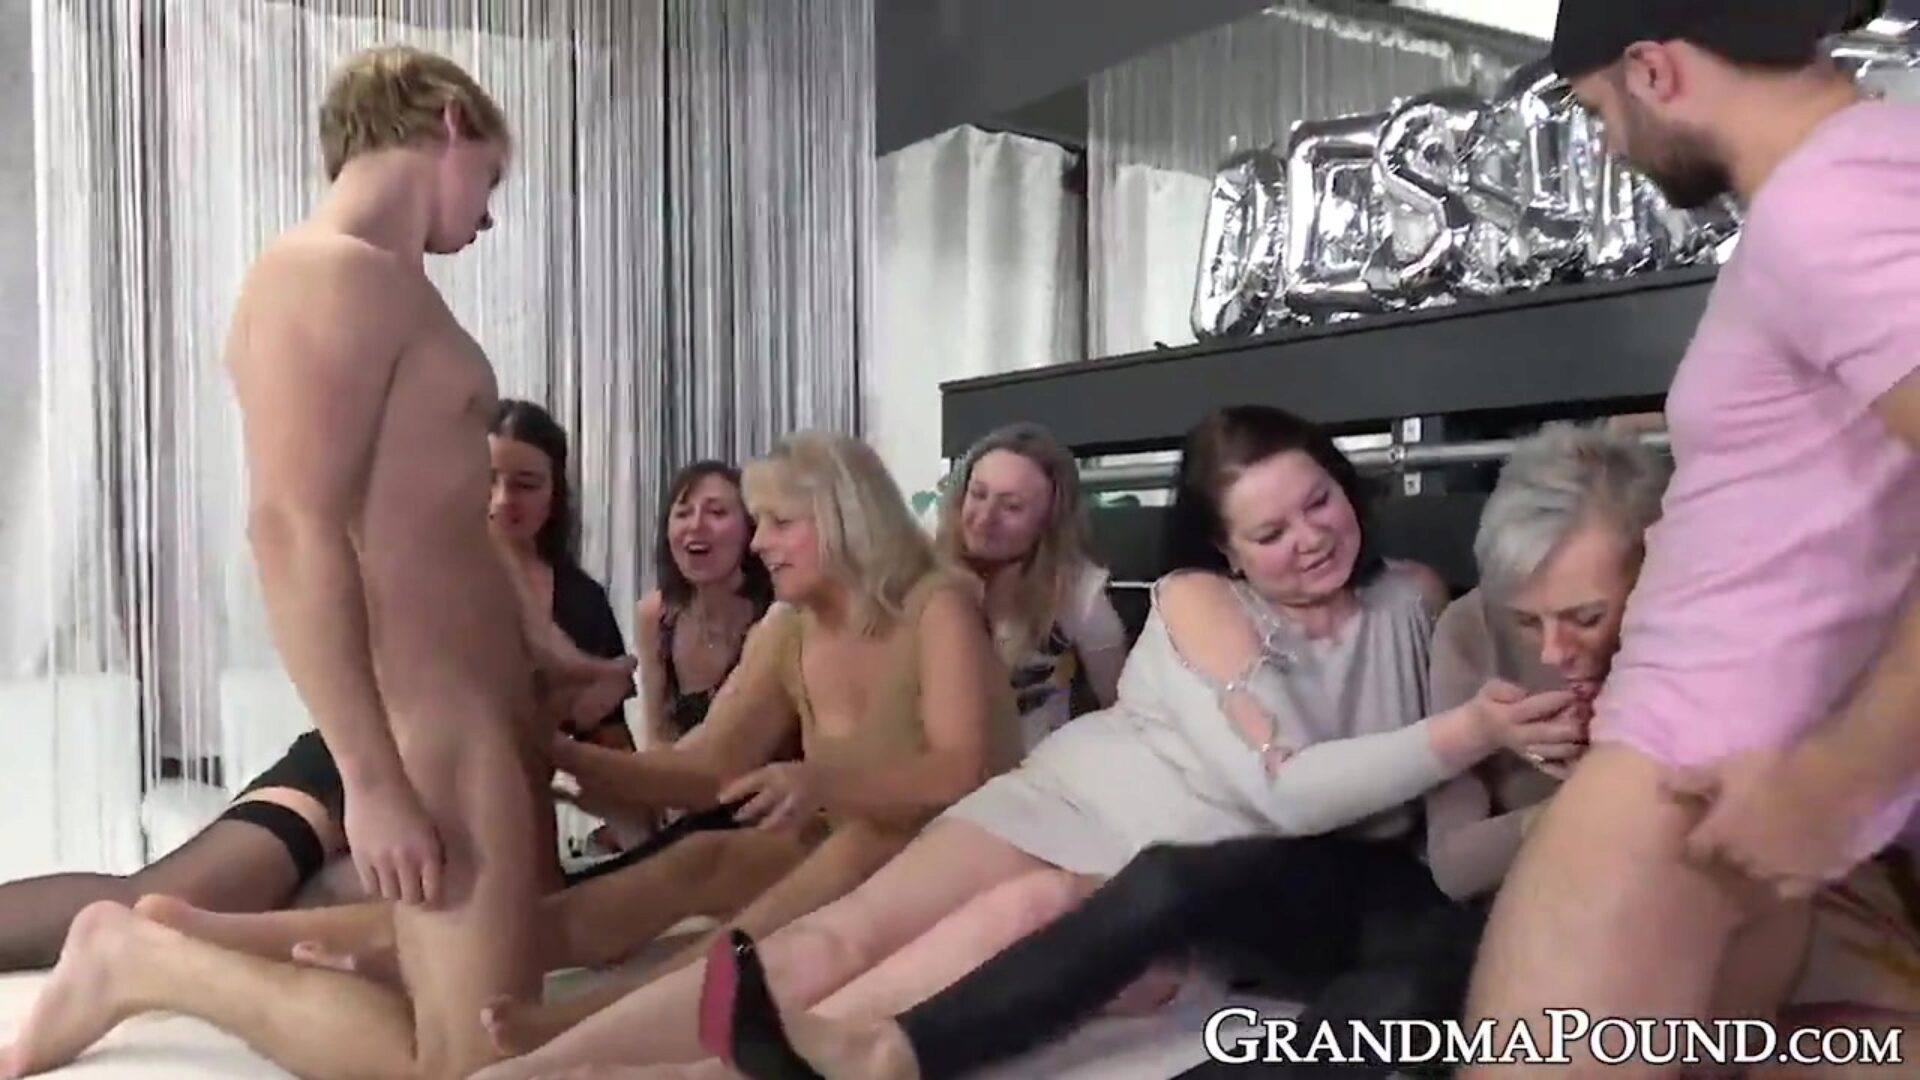 Gang of grandmas absorbs a couple of giant young rock hard jocks Orgy movie scene with tons of grandmothers engulfing on youthful knobs and they love the feeling of it all too